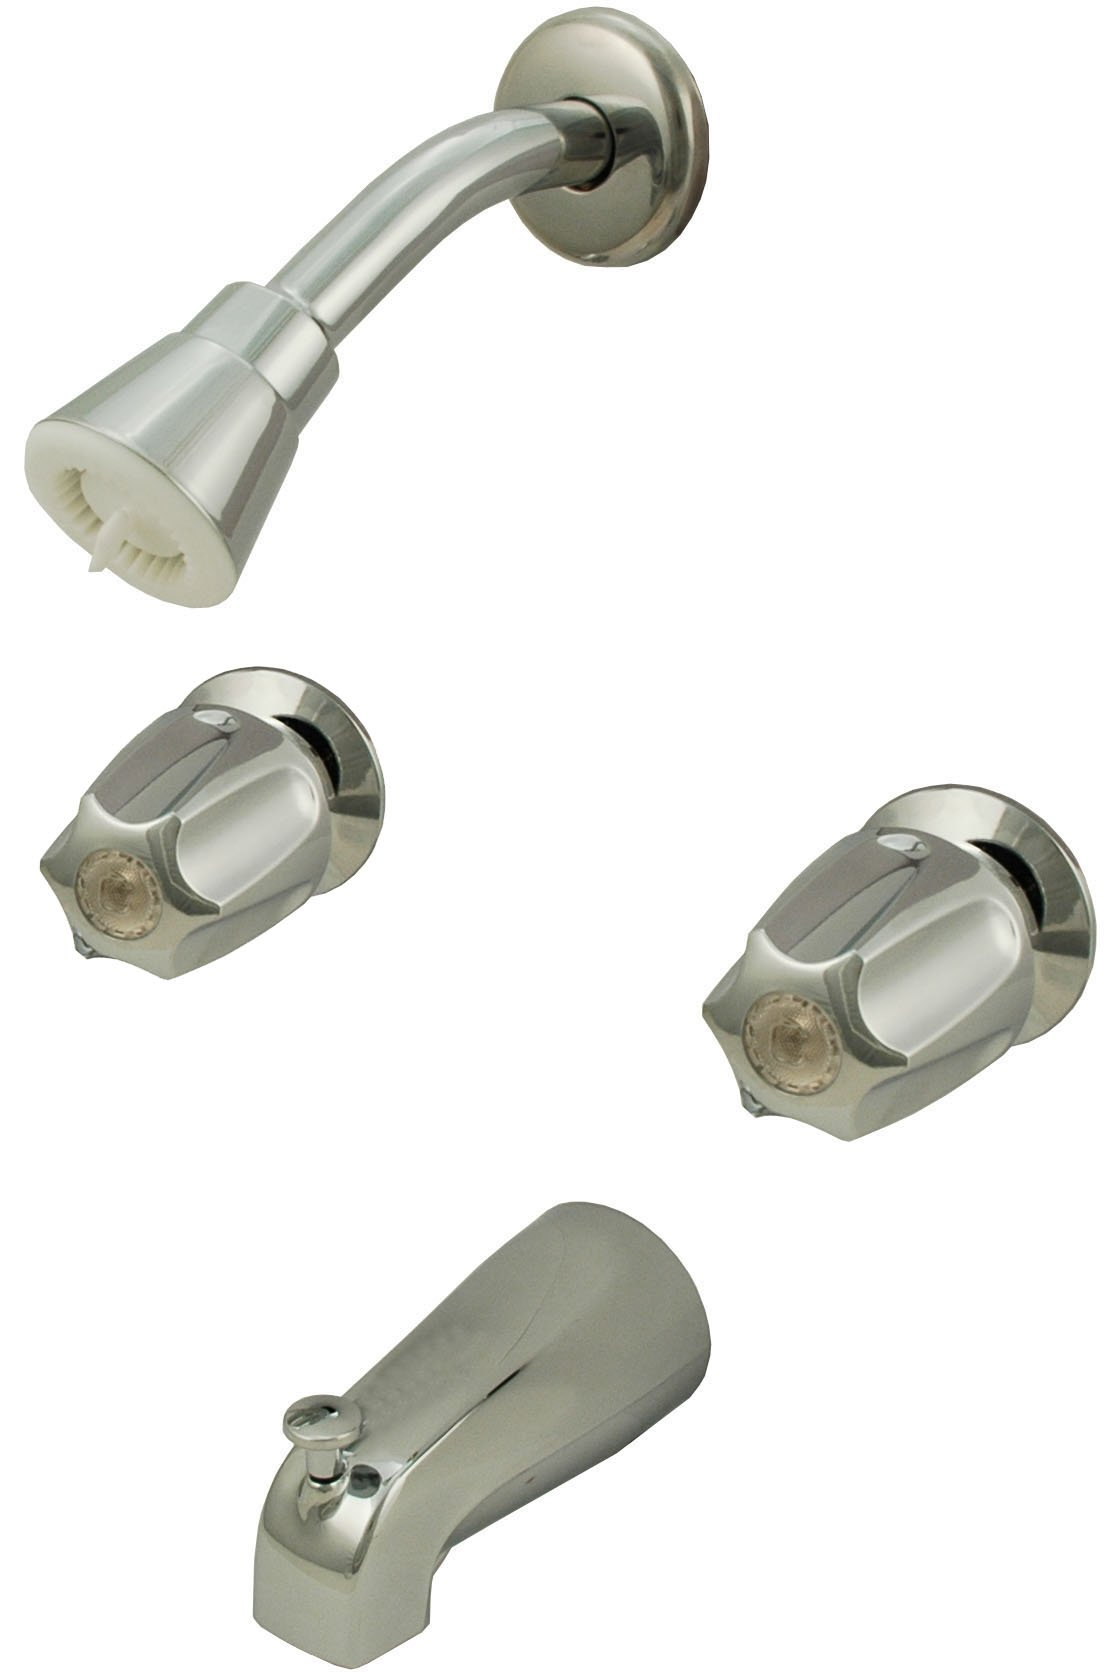 8'' Two-way Tub & Shower Valves, Chrome Finish, Verve Handles, Compression Stems - By Plumb USA